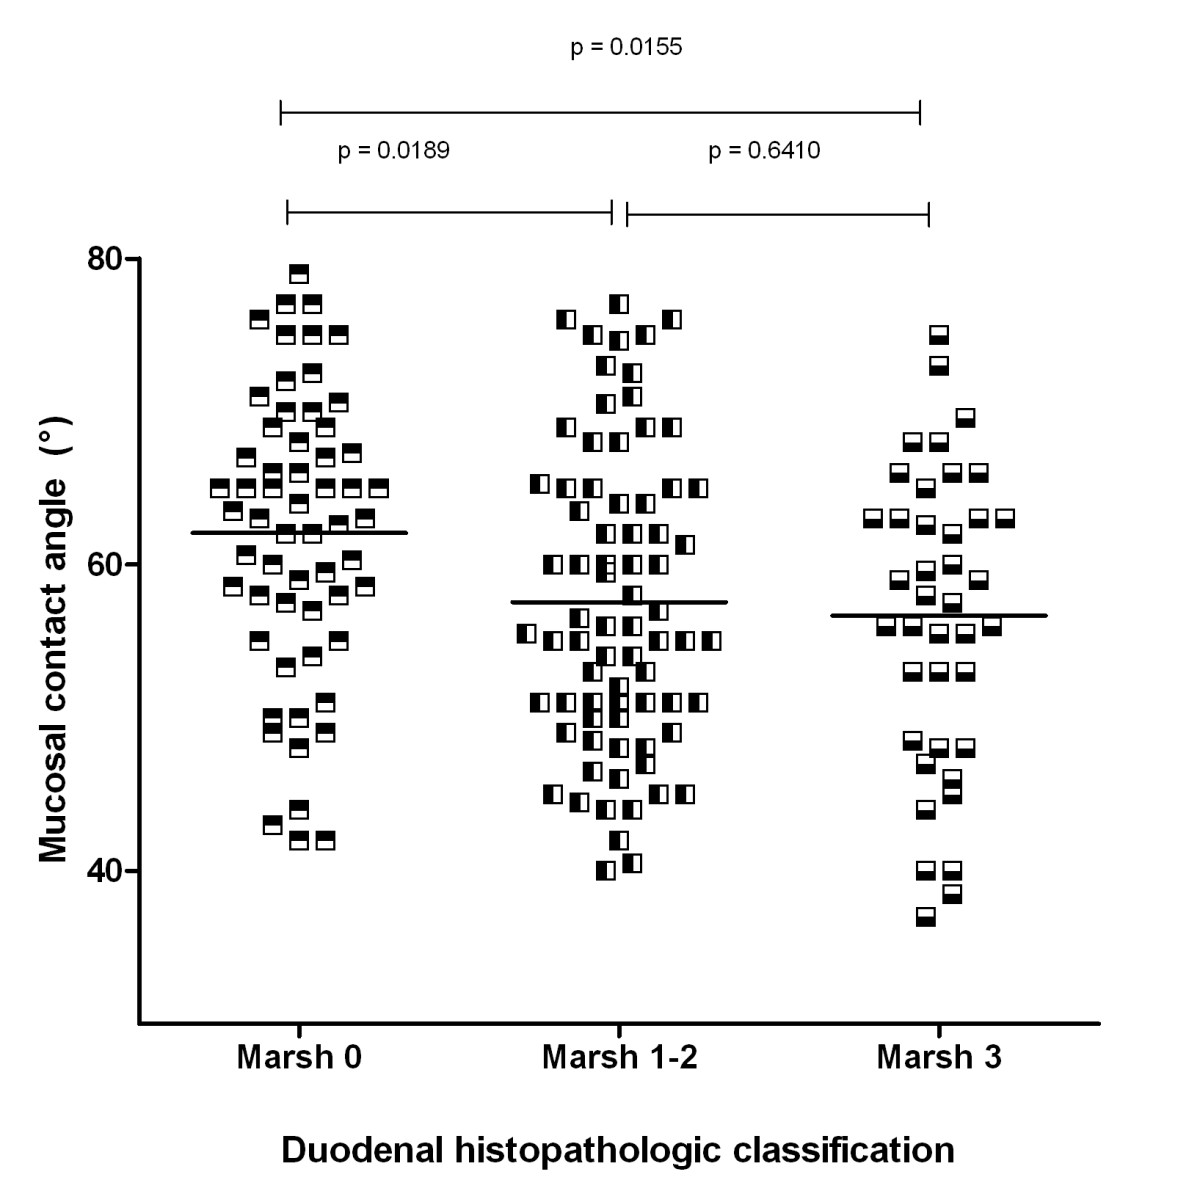 https://static-content.springer.com/image/art%3A10.1186%2F1471-230X-11-119/MediaObjects/12876_2011_Article_652_Fig3_HTML.jpg